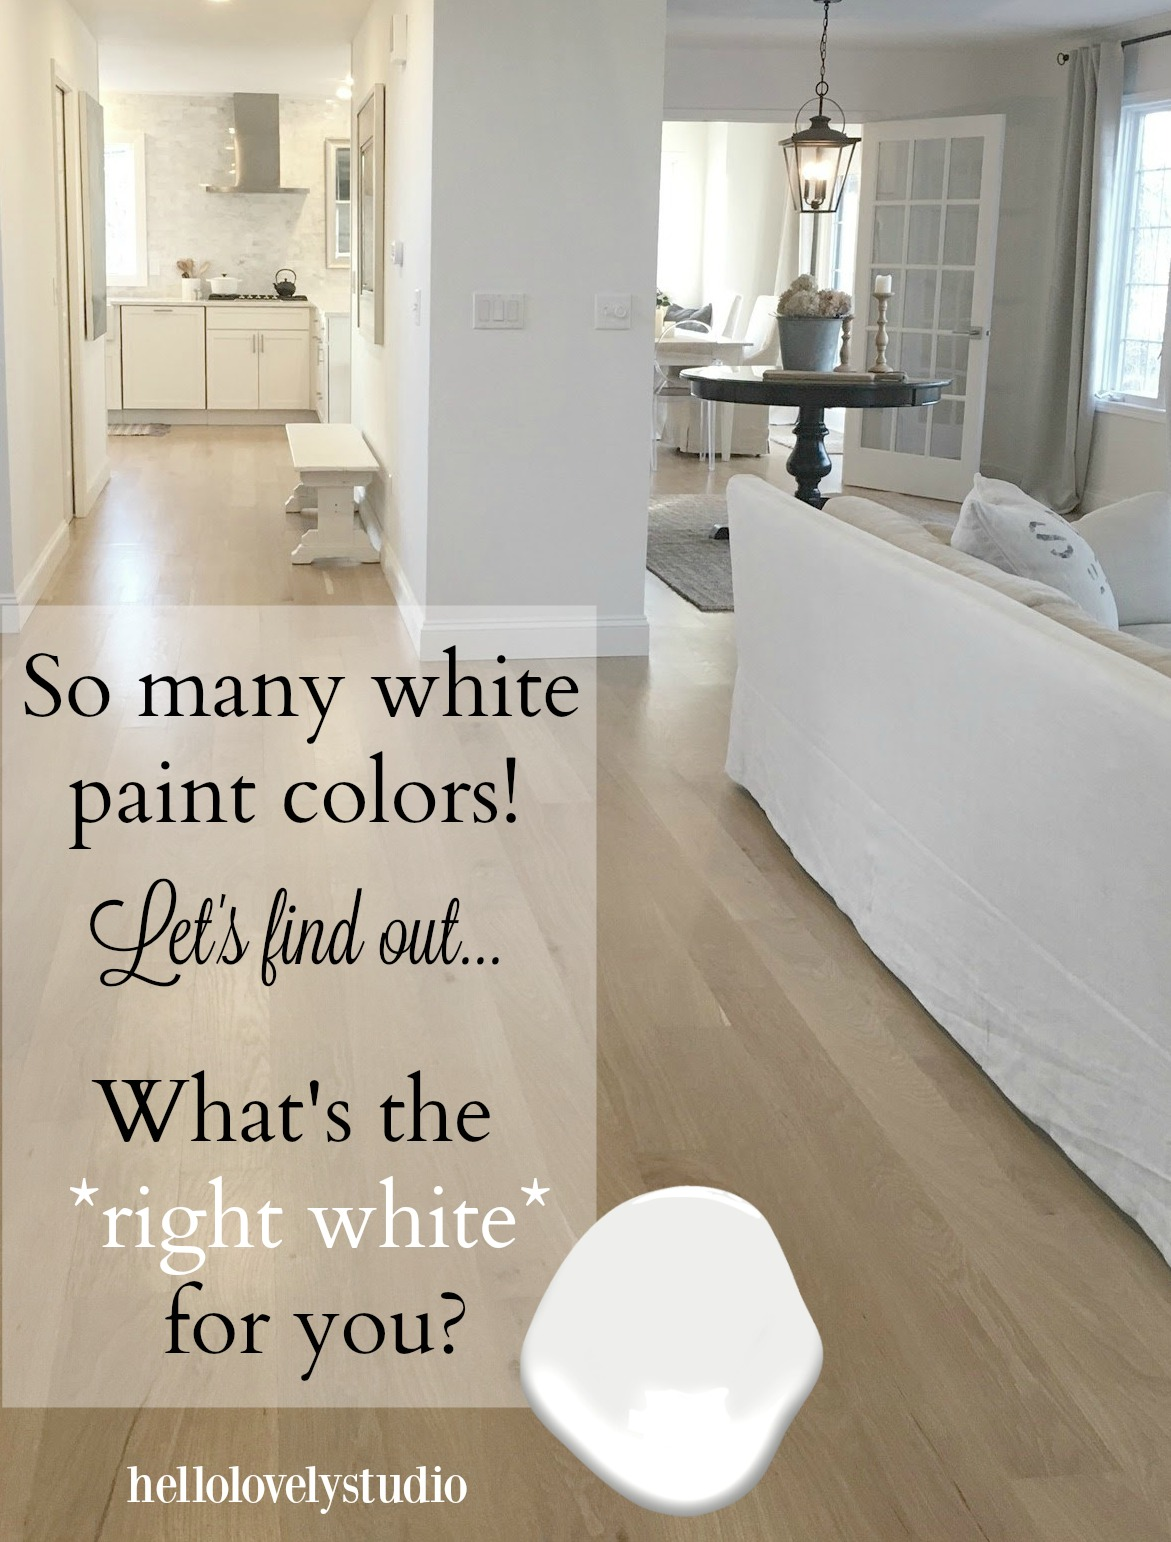 So many white paint colors! Let's find out what's the right white for you. Help for choosing the perfect white paint color for your walls from design experts on Hello Lovely Studio. #paintcolors #whitepaint #interiordesign